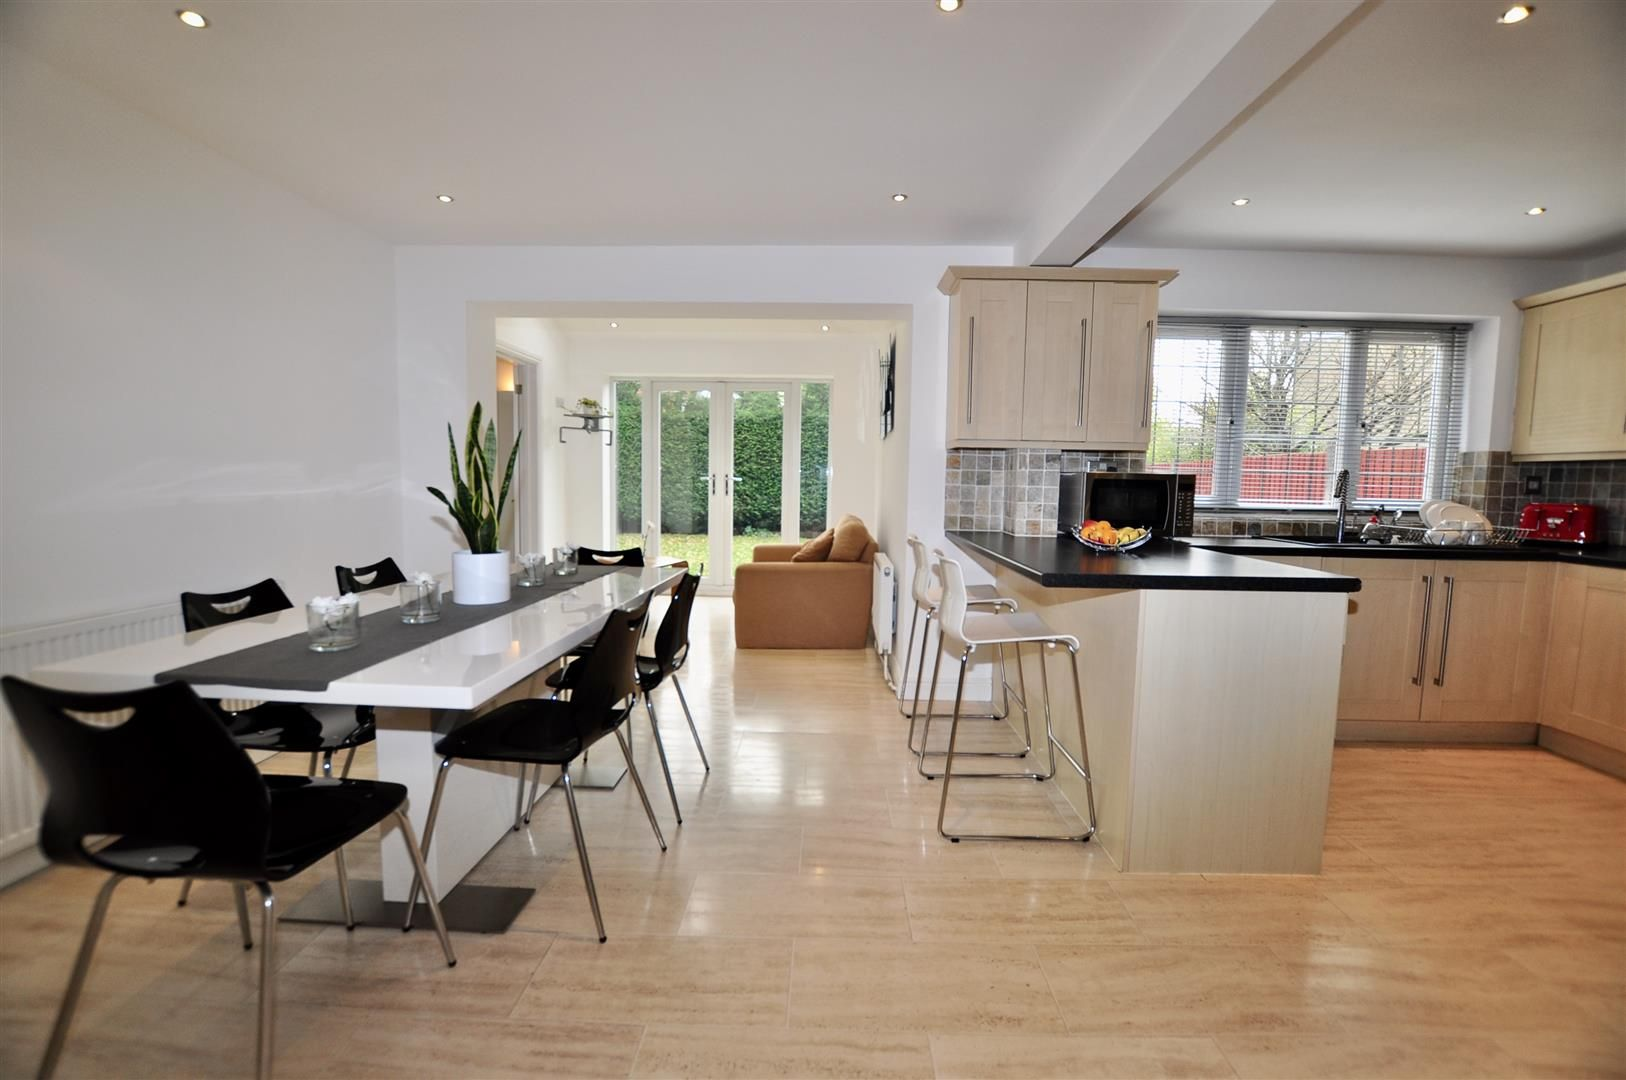 4 bed house for sale in Hagley 2